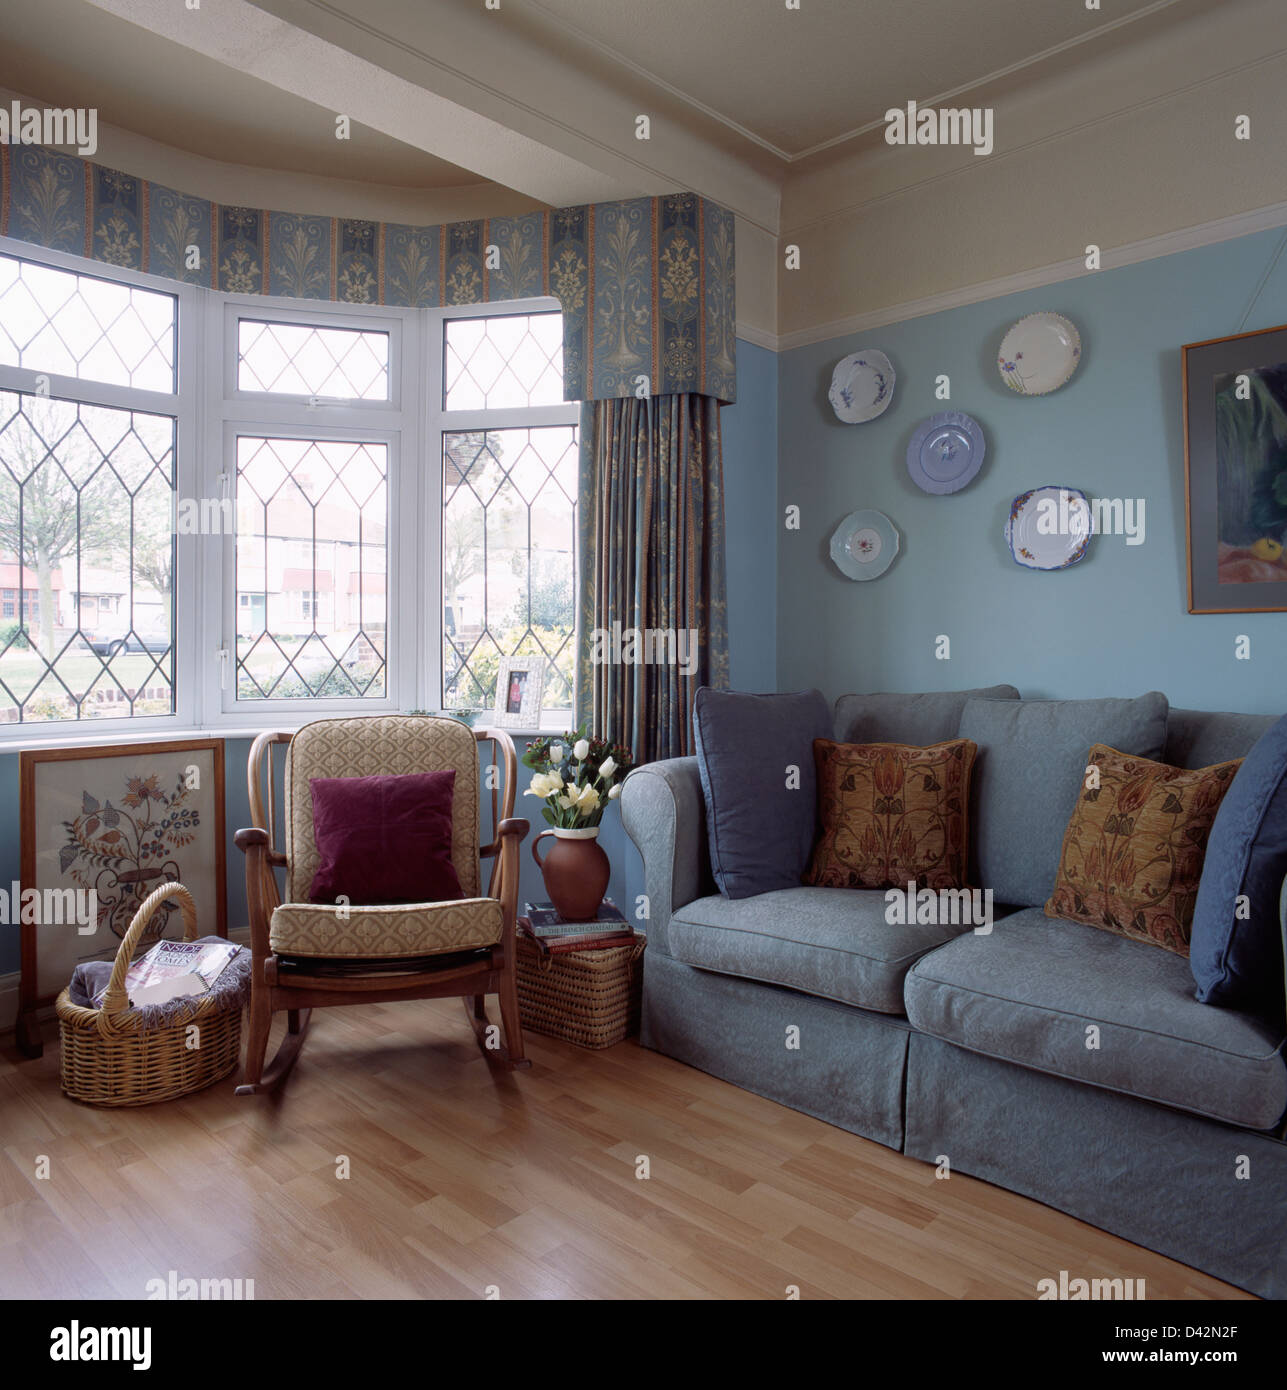 Rocking Chair In Front Of Bay Window With Blue Drapes In